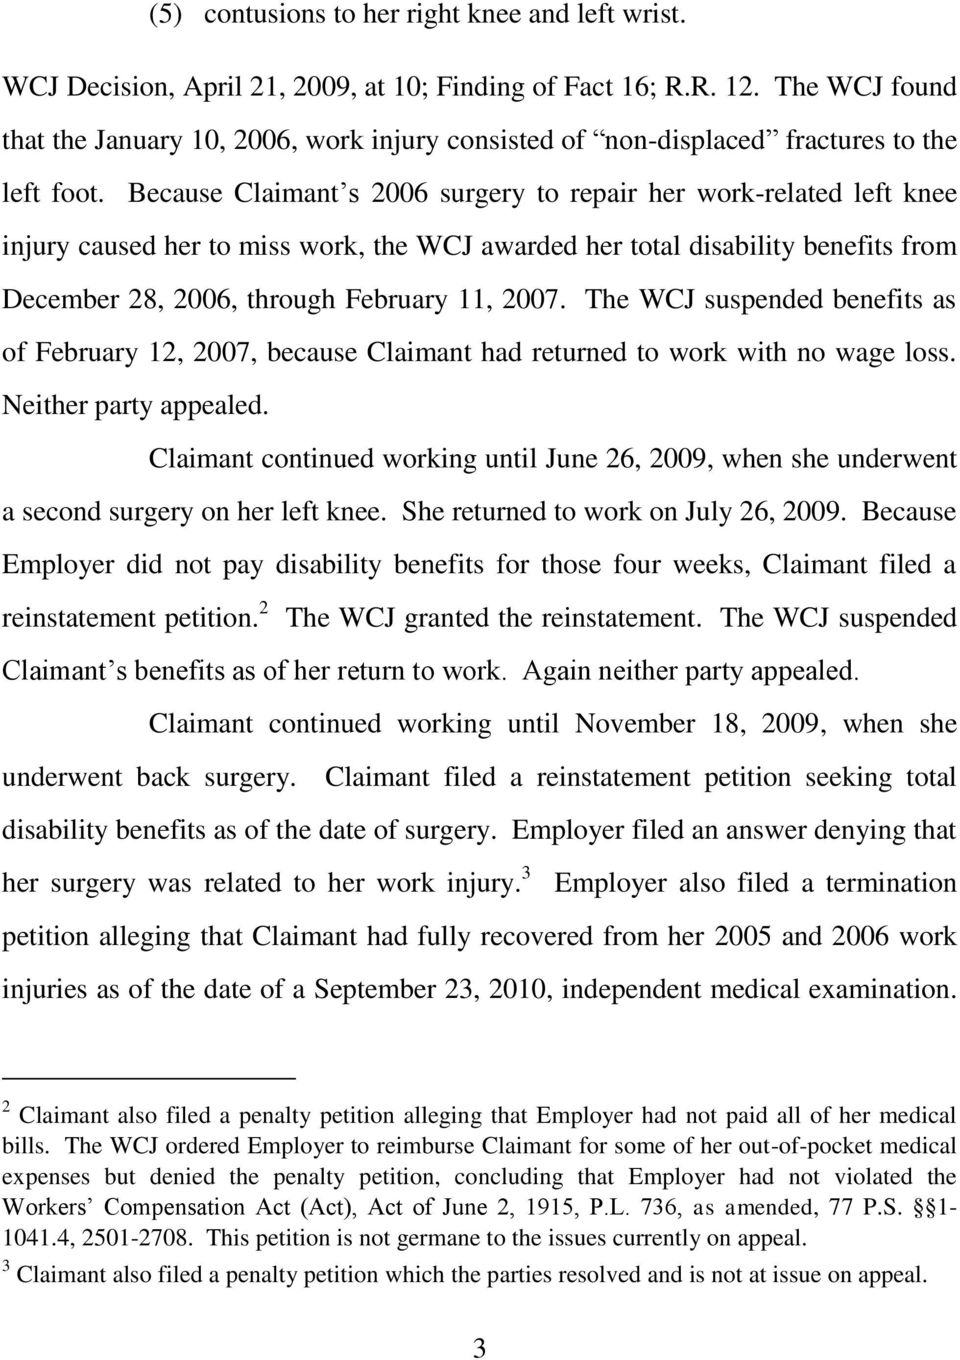 Because Claimant s 2006 surgery to repair her work-related left knee injury caused her to miss work, the WCJ awarded her total disability benefits from December 28, 2006, through February 11, 2007.